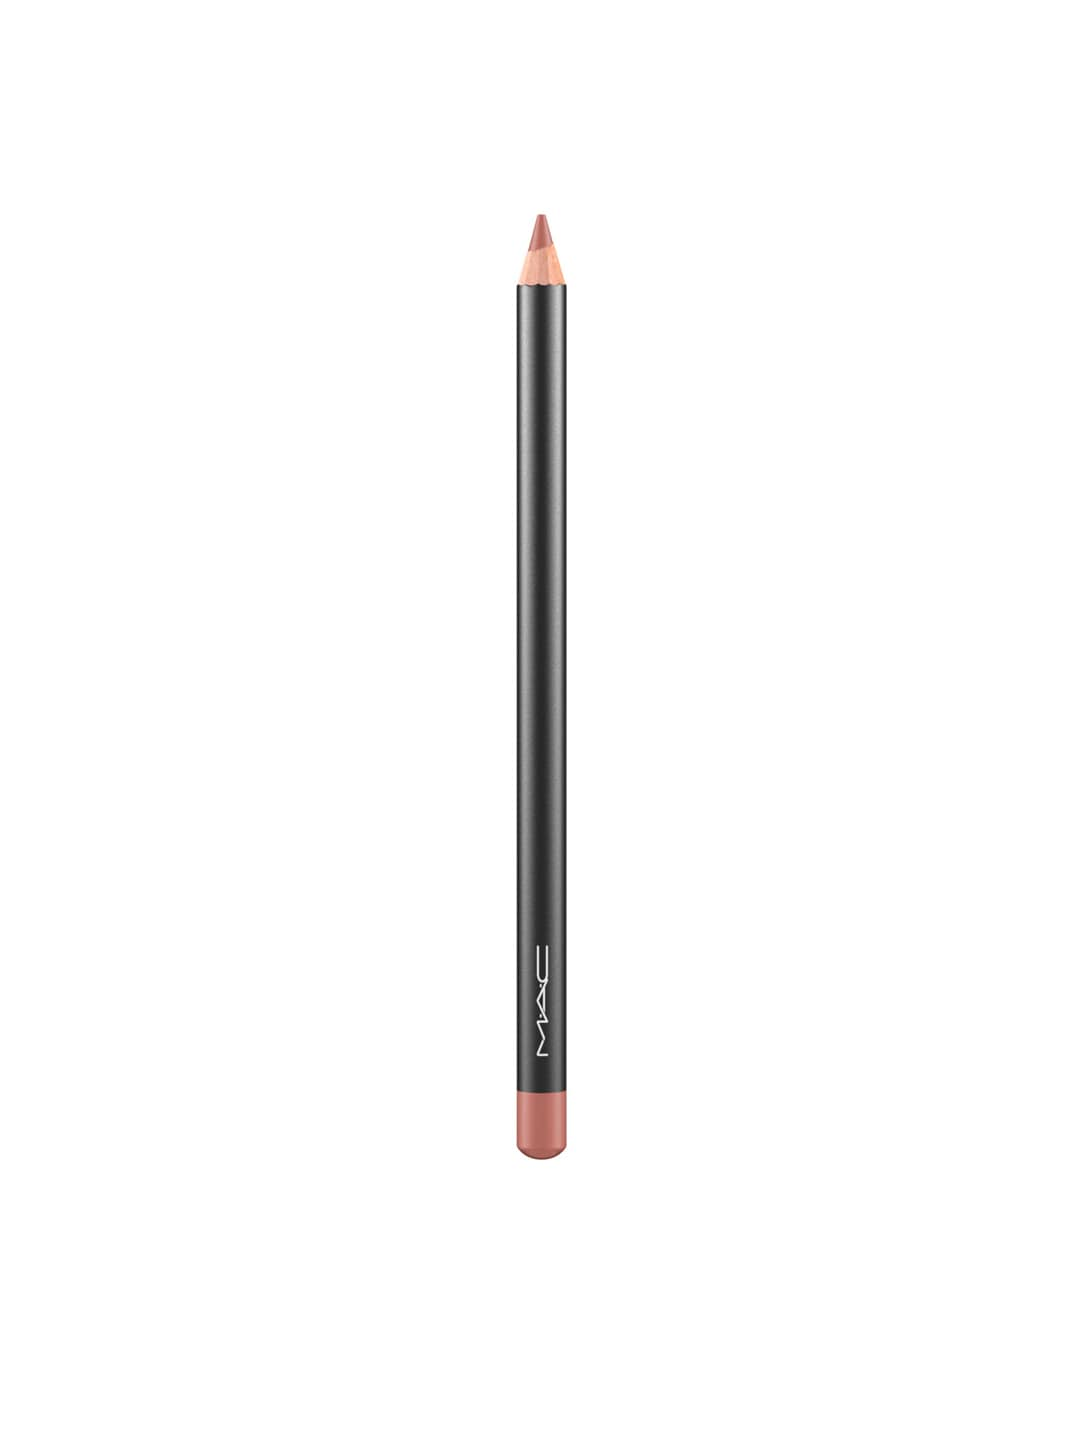 M.A.C Boldly Bare Lip Pencil image